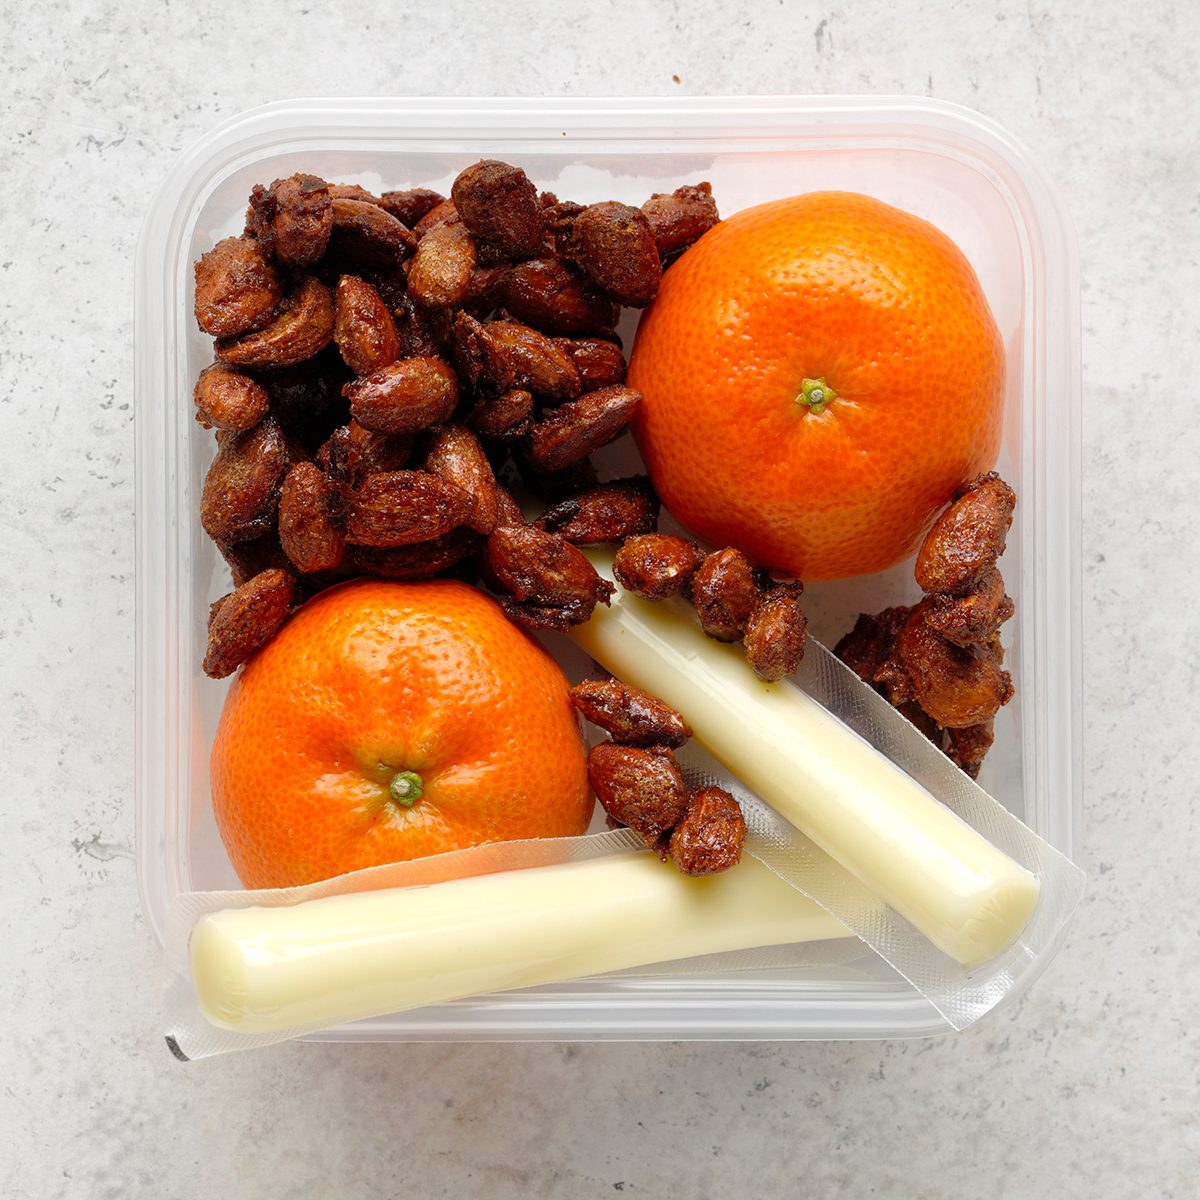 cinnamon toasted almonds, string cheese, fruit, oranges, meal planning premium